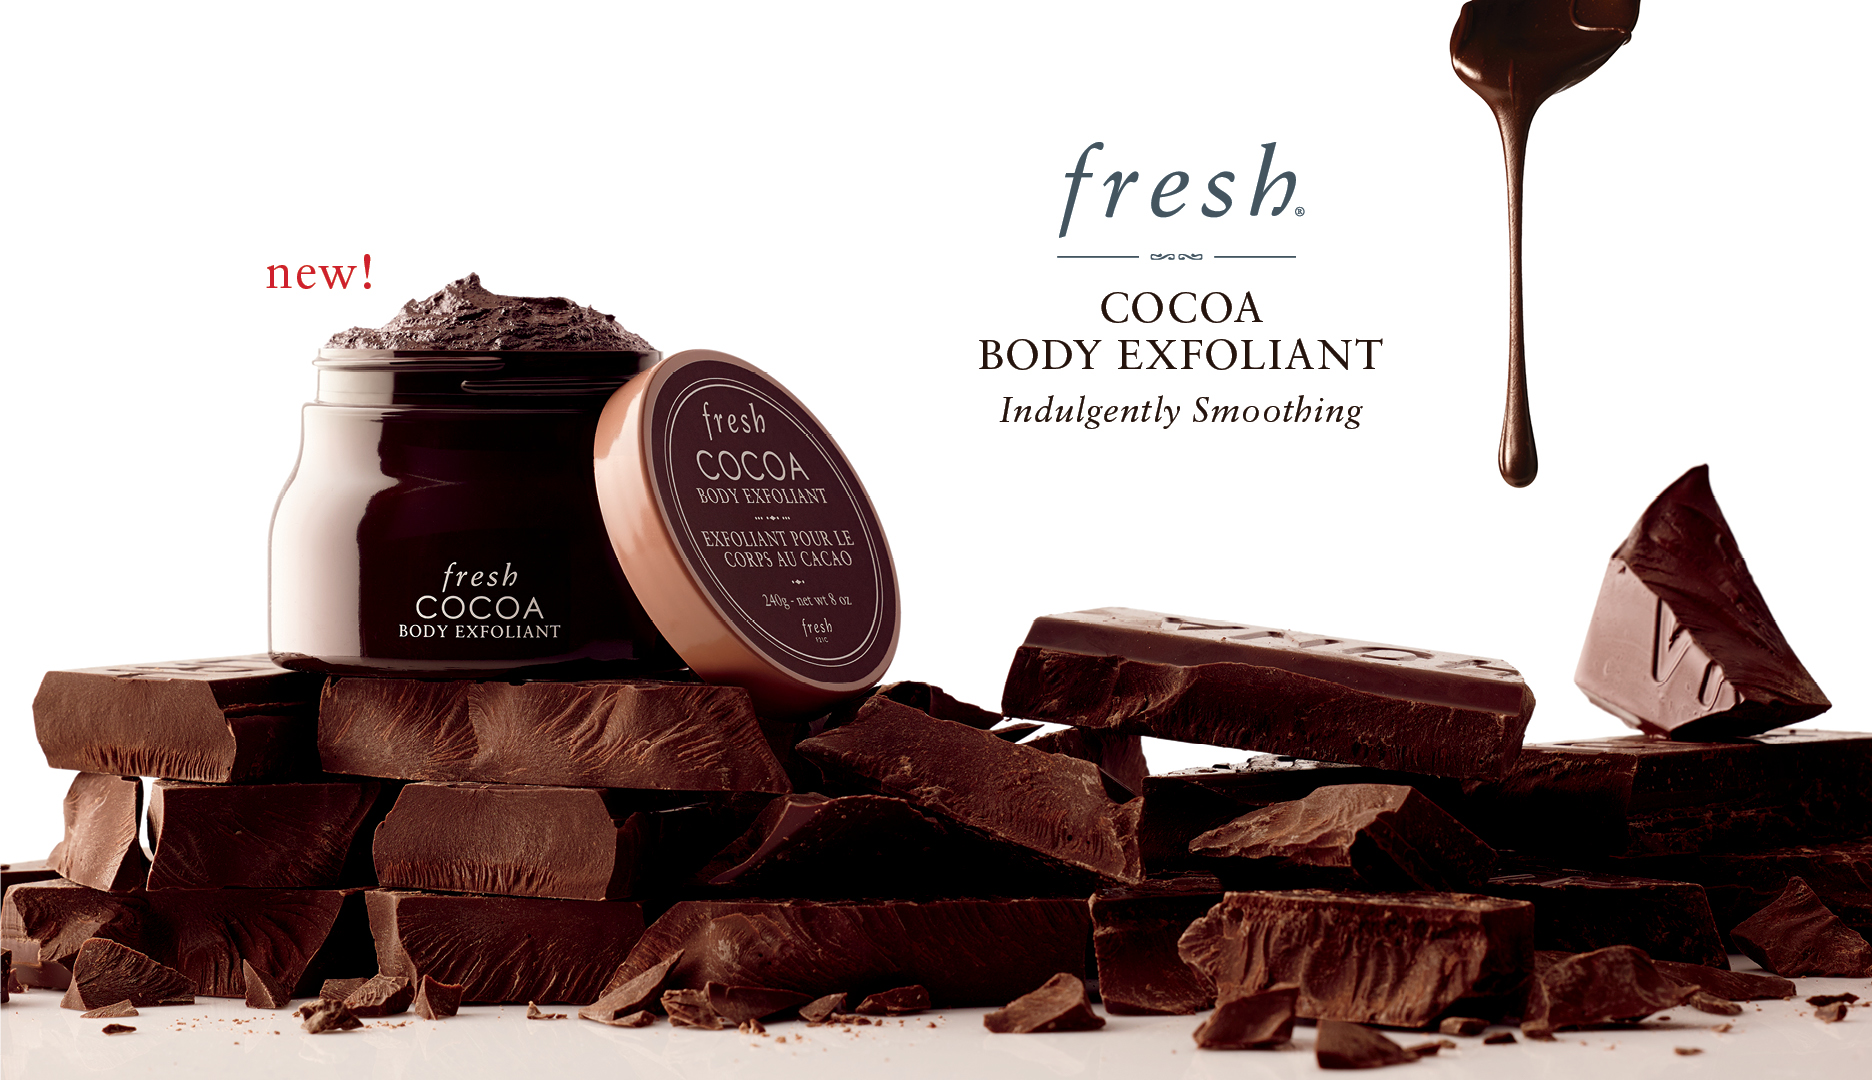 Advertising: Fresh, Cocoa